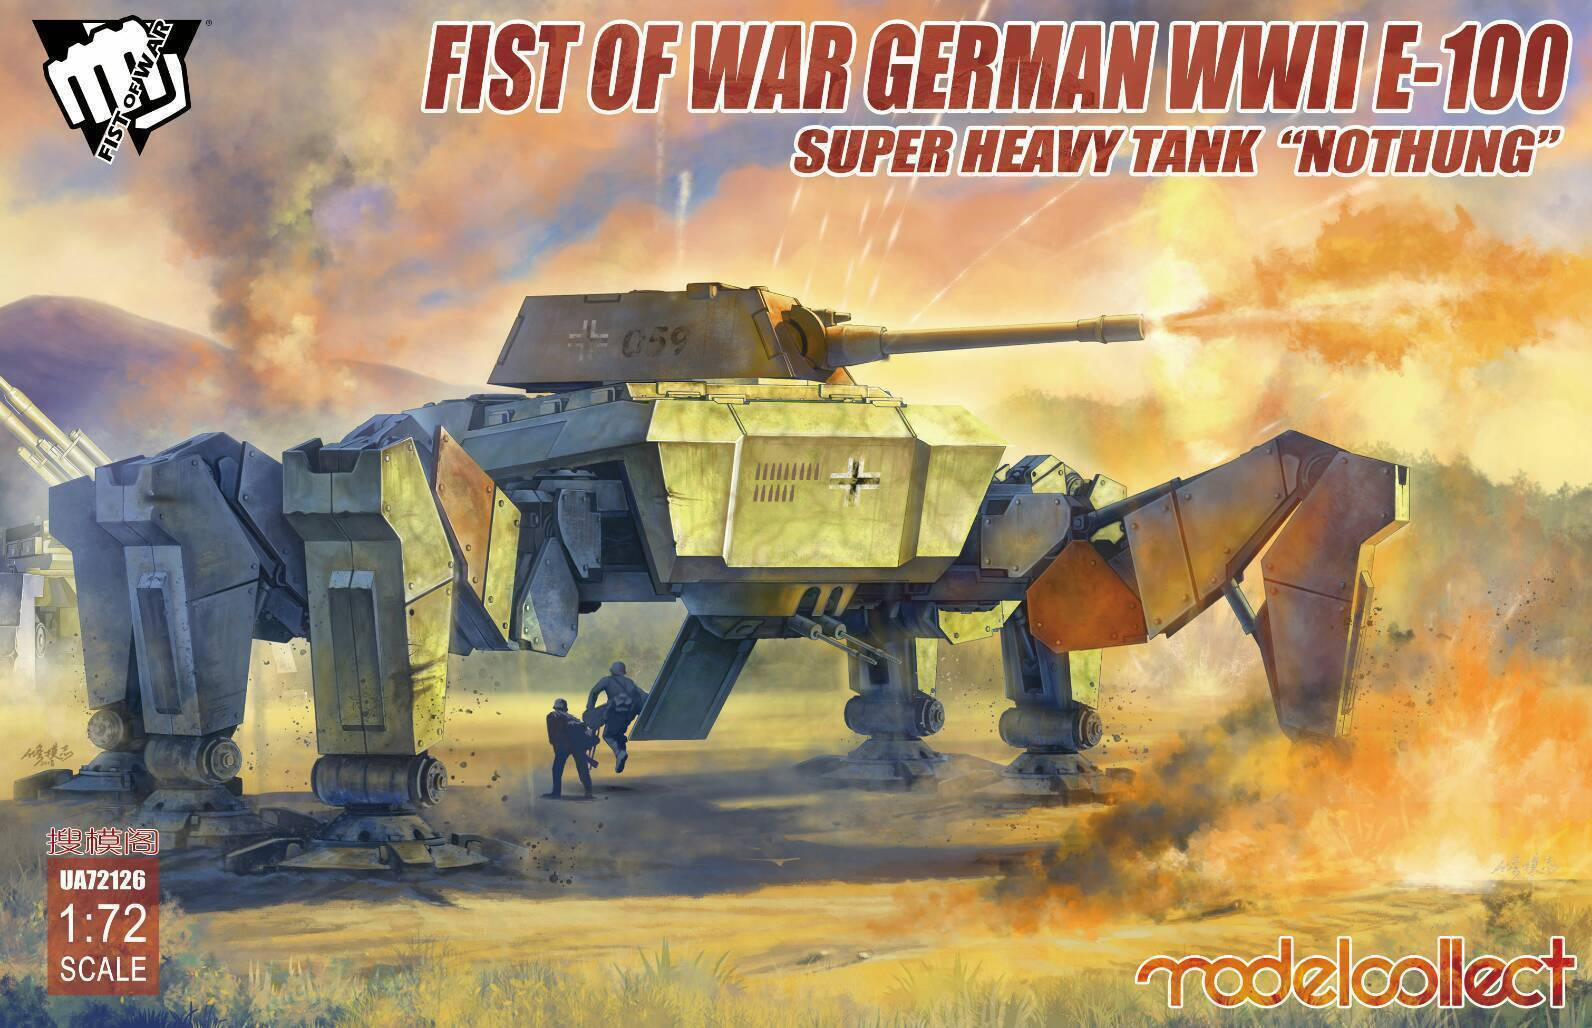 ModelCollect 1 72 UA-72126 WWII WWII WWII German E-100 Heavy Tank  NOTHUNG  (Fist of Wars) 0eca23